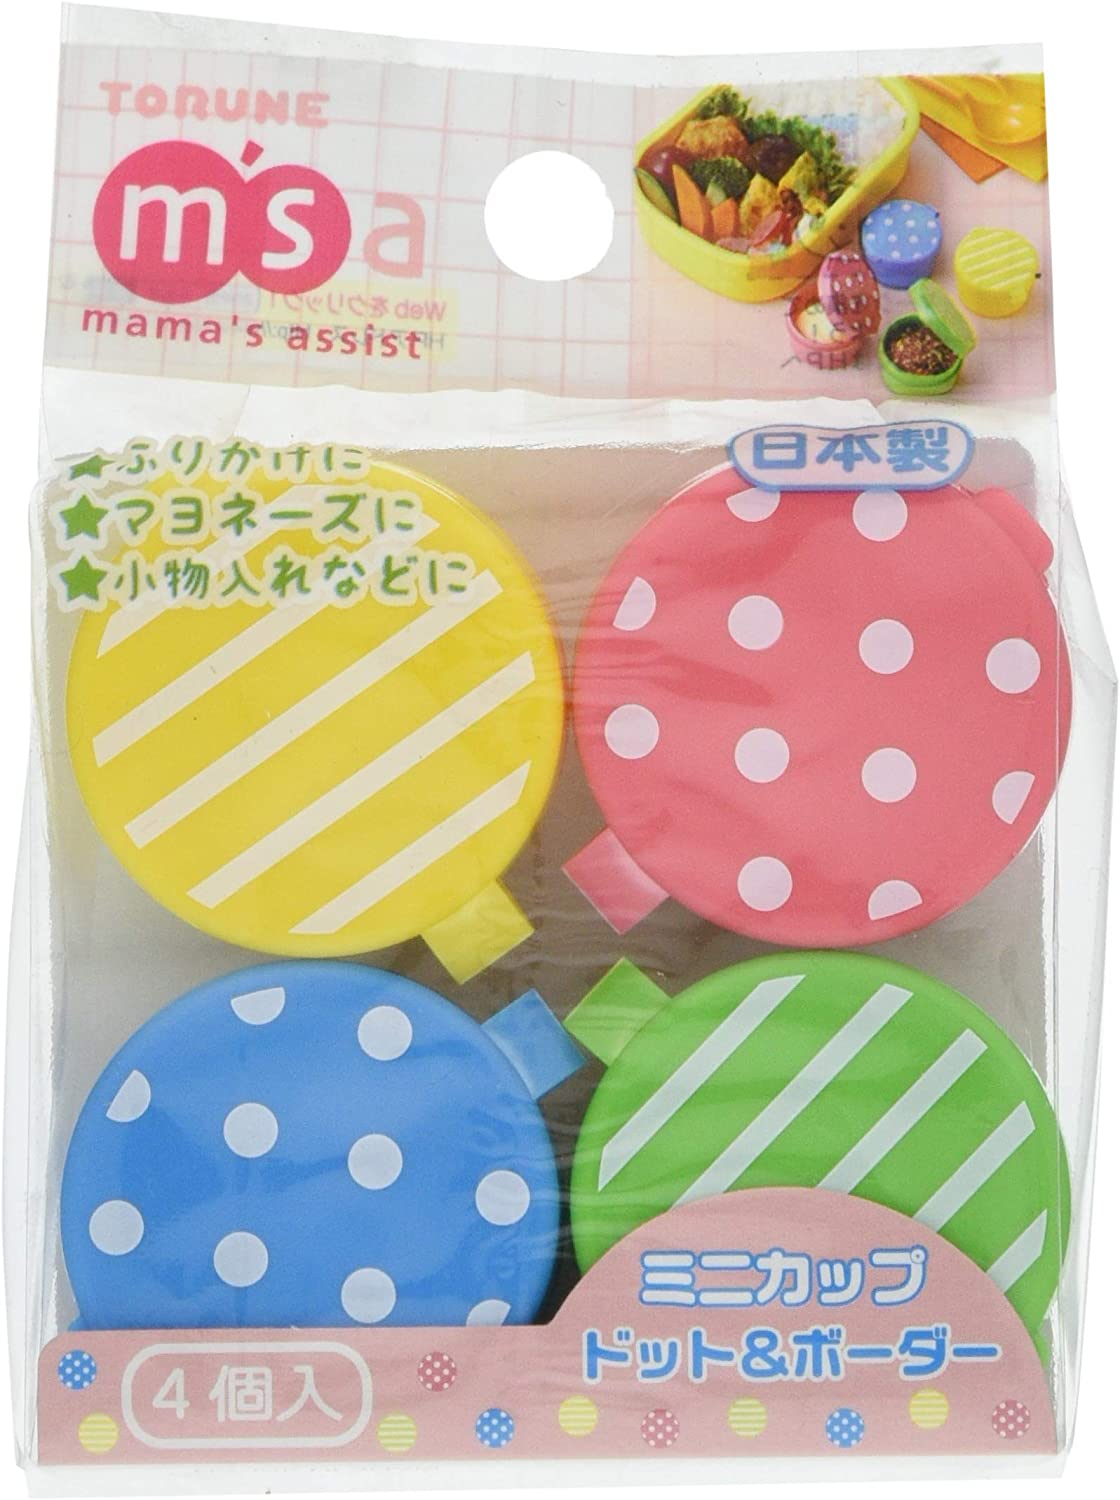 CuteZCute Food Pick, Bento Box, 4 Count (Pack of 1), Blue, Pink, Green, Yellow